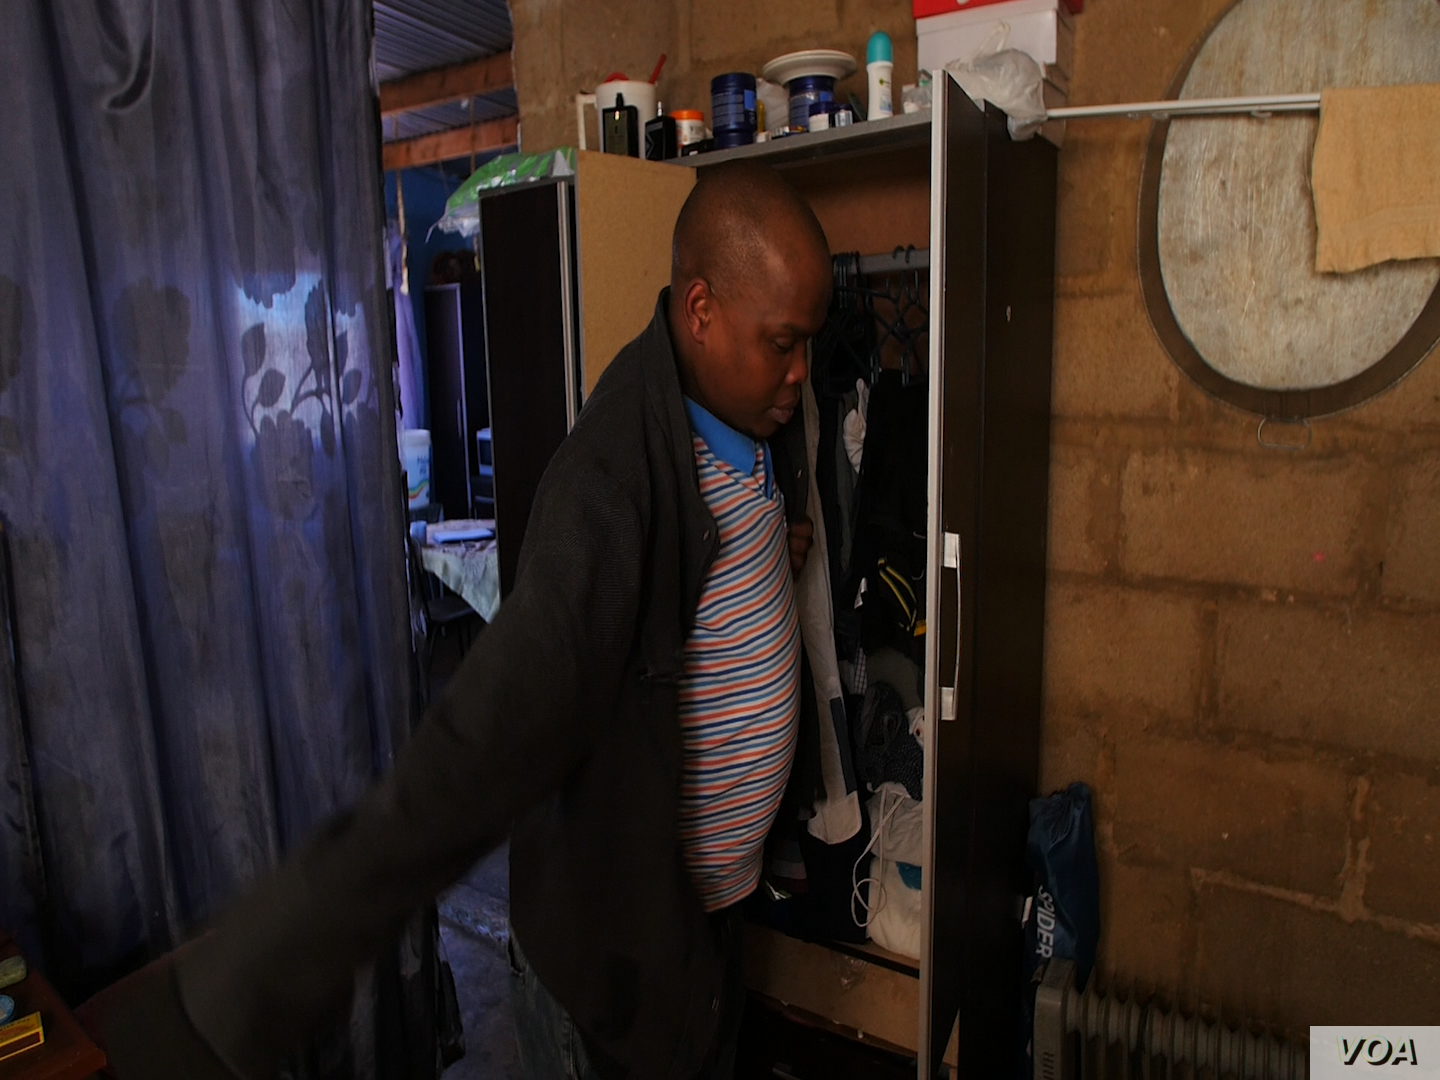 Abram Serapelo is ready to work but he has no idea when -- or if -- he'll be paid. He's one of some 700 workers at the Shiva Uranium mine who are waiting for late salaries from the Gupta family, Indian businessmen who fled South Africa in Februar...